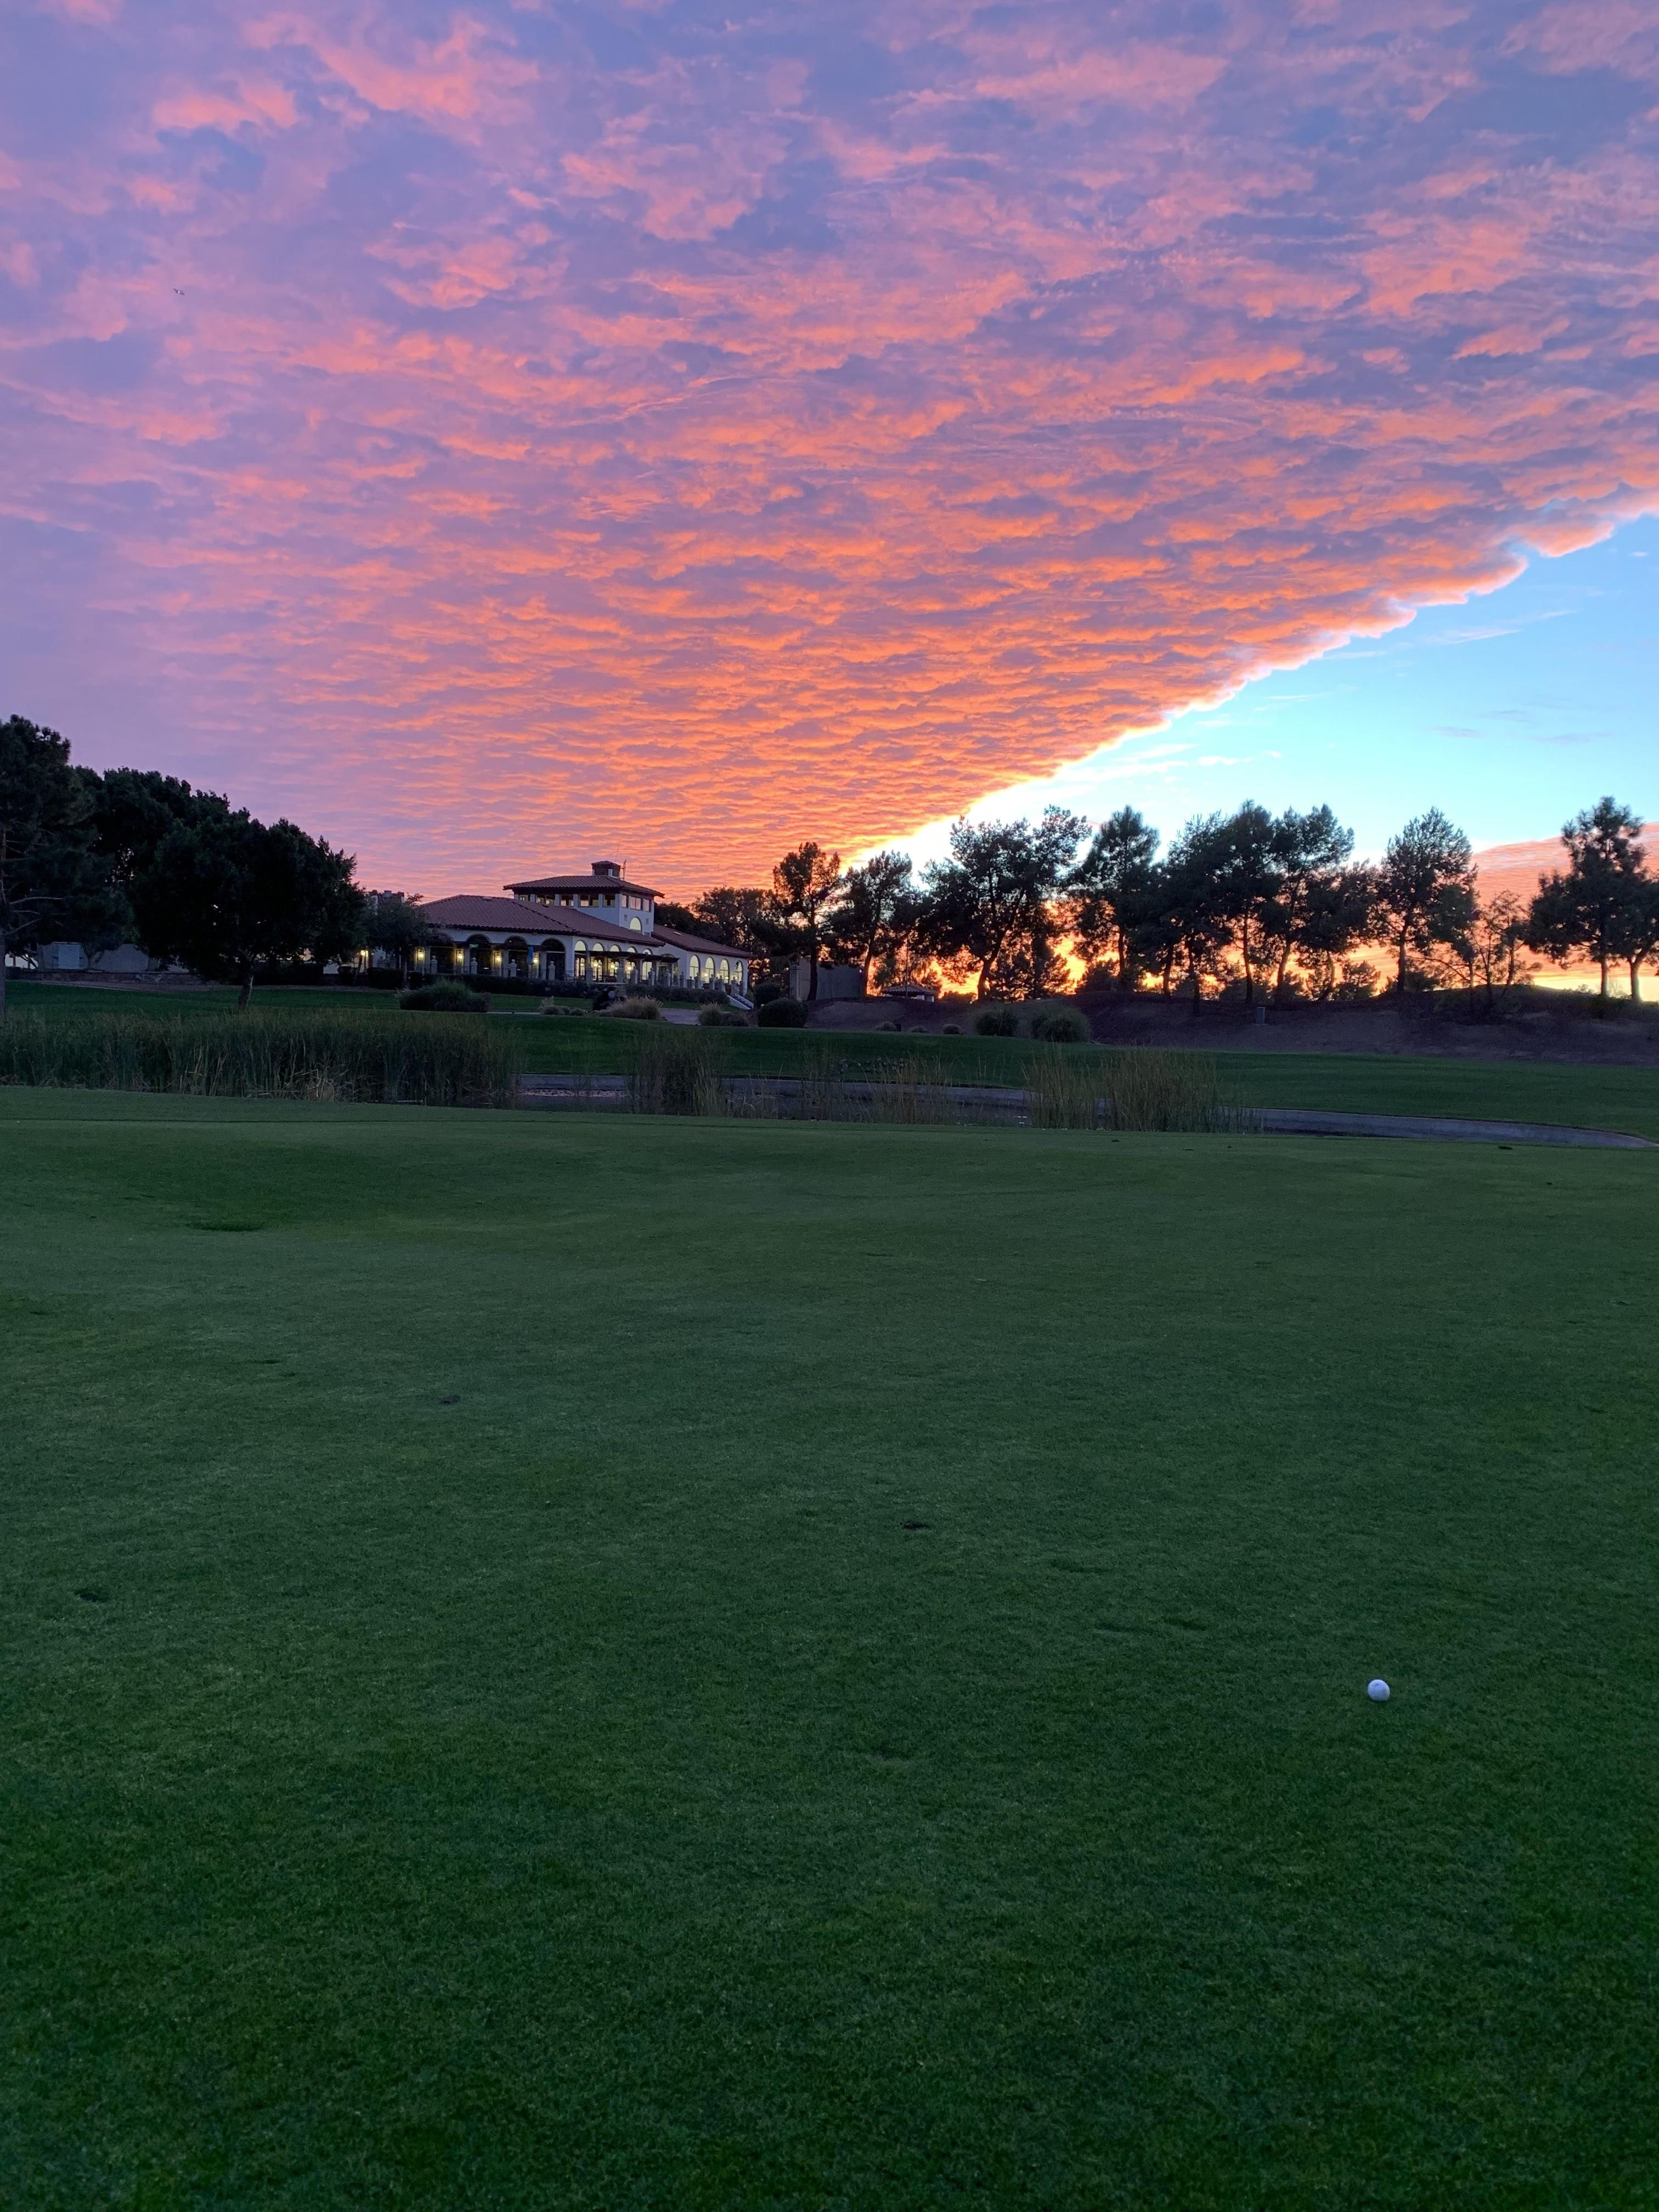 Sunset over a golf course in Phoenix Arizona. Reminded me